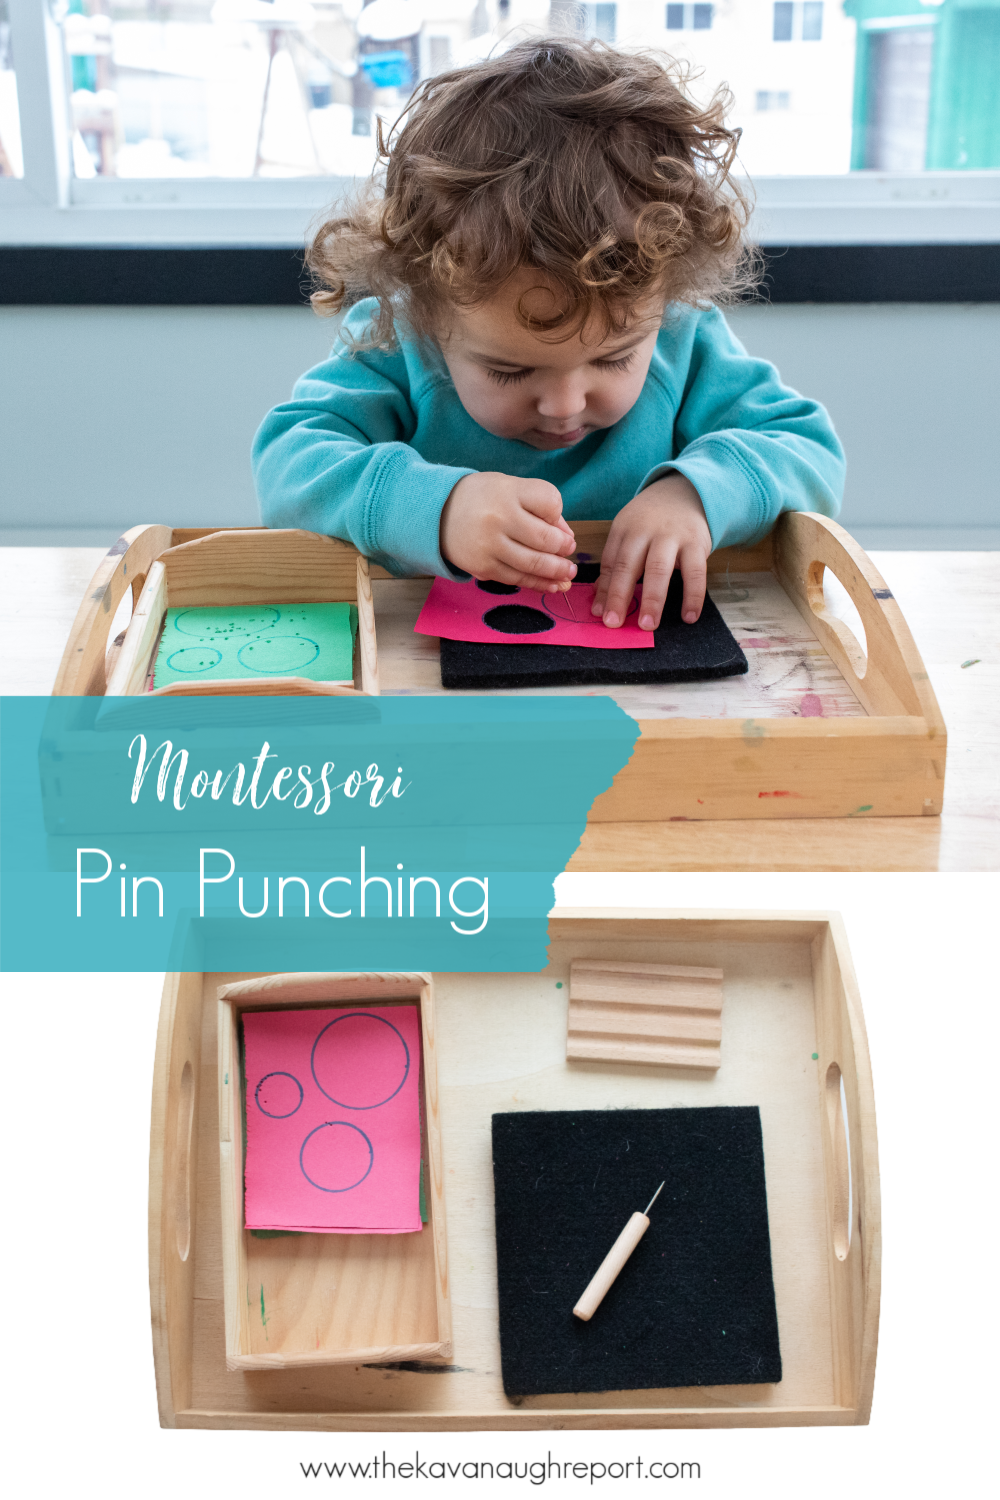 A look a Montessori pin punching work, a fun pre-writing activity for preschoolers